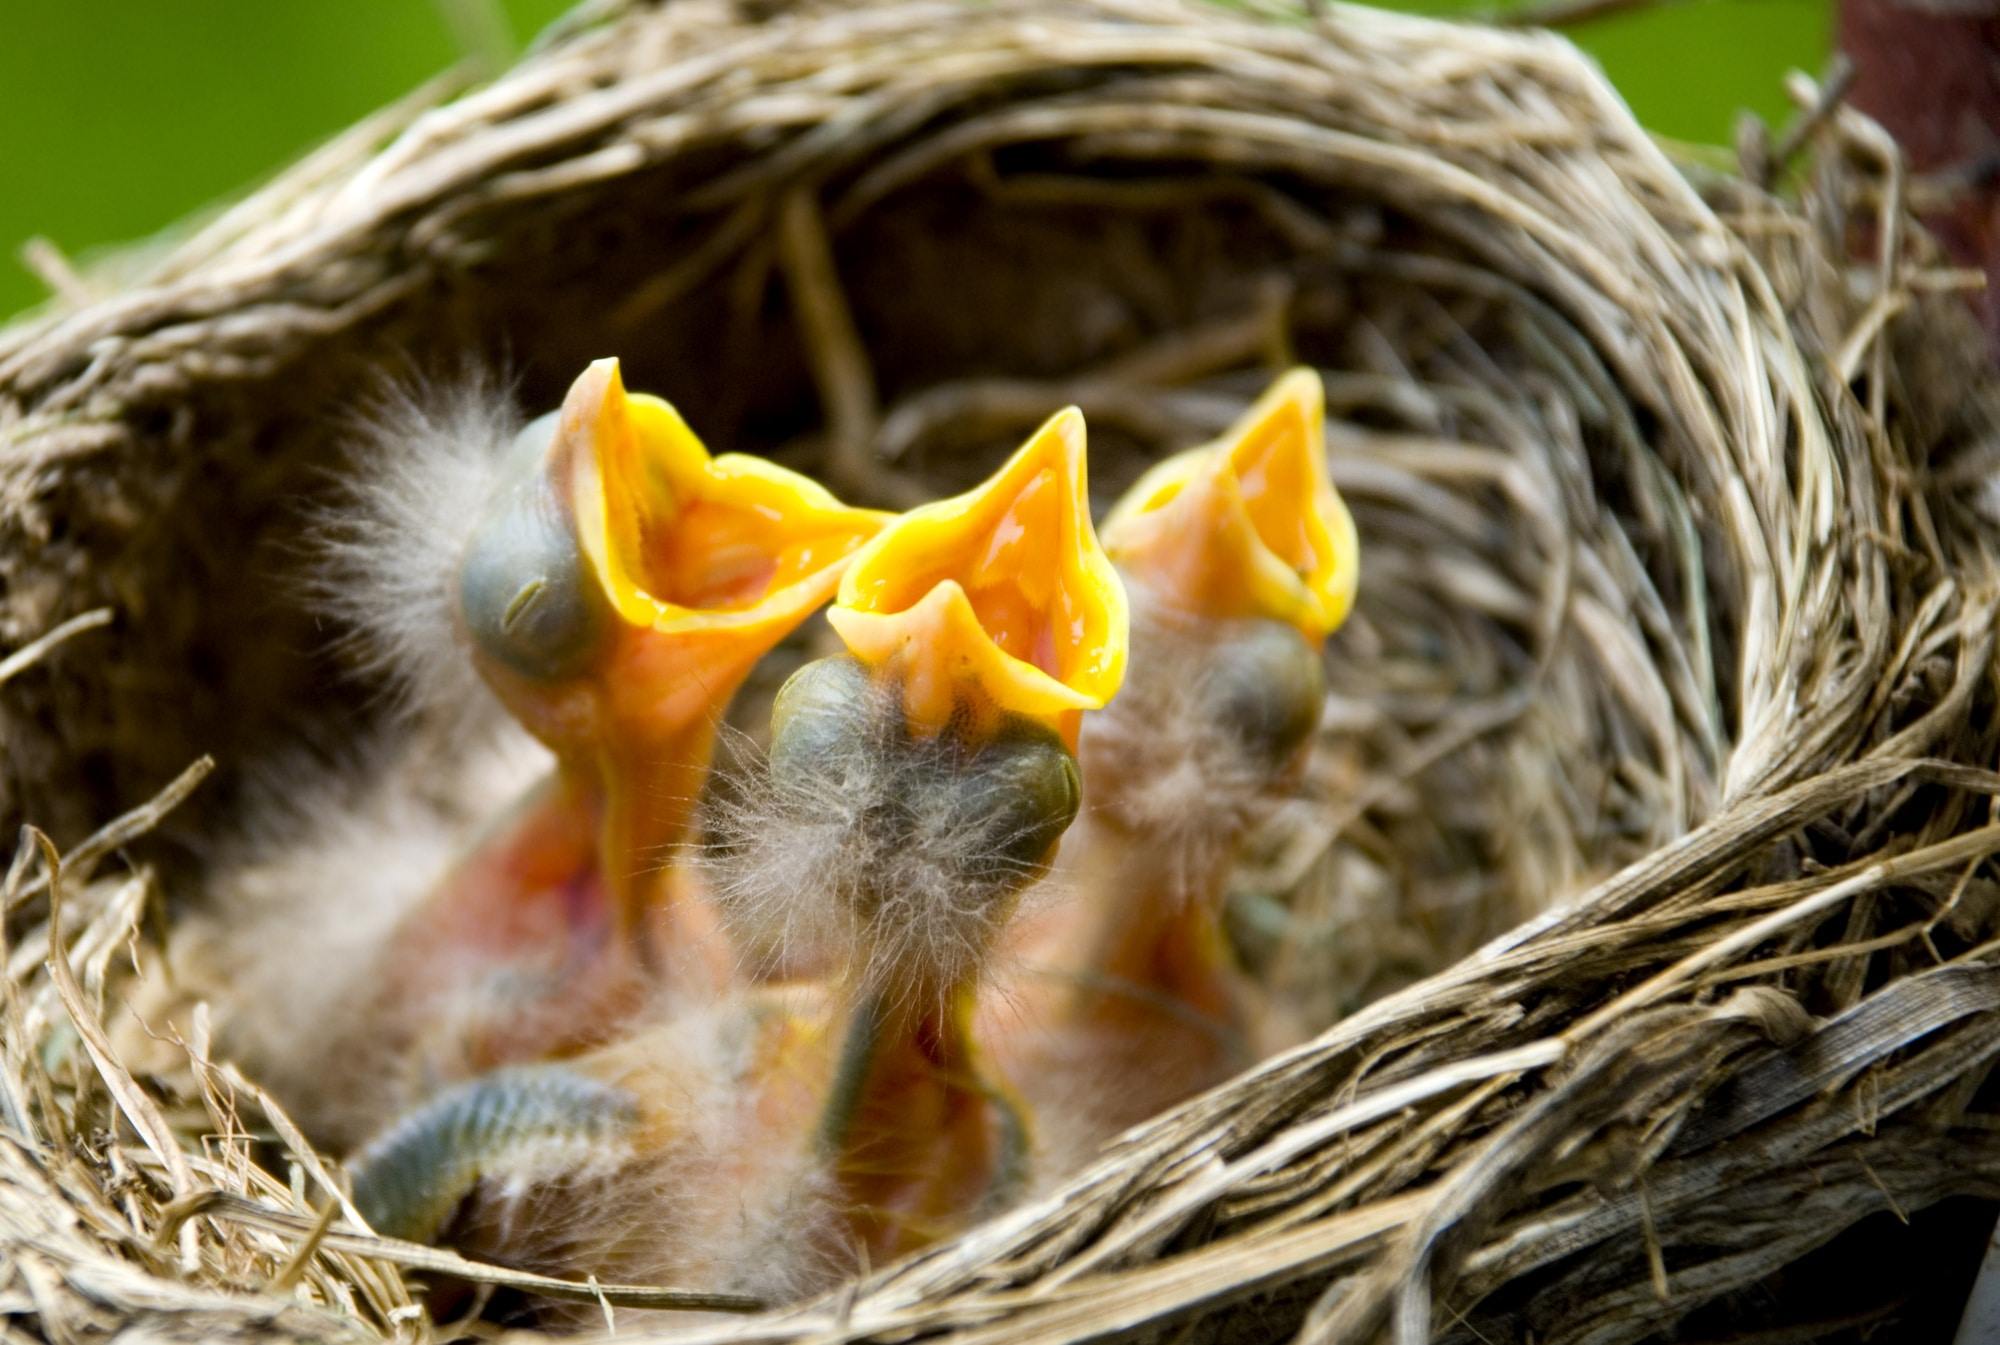 Three baby robins in a nest wanting the mother bird to come and feed them